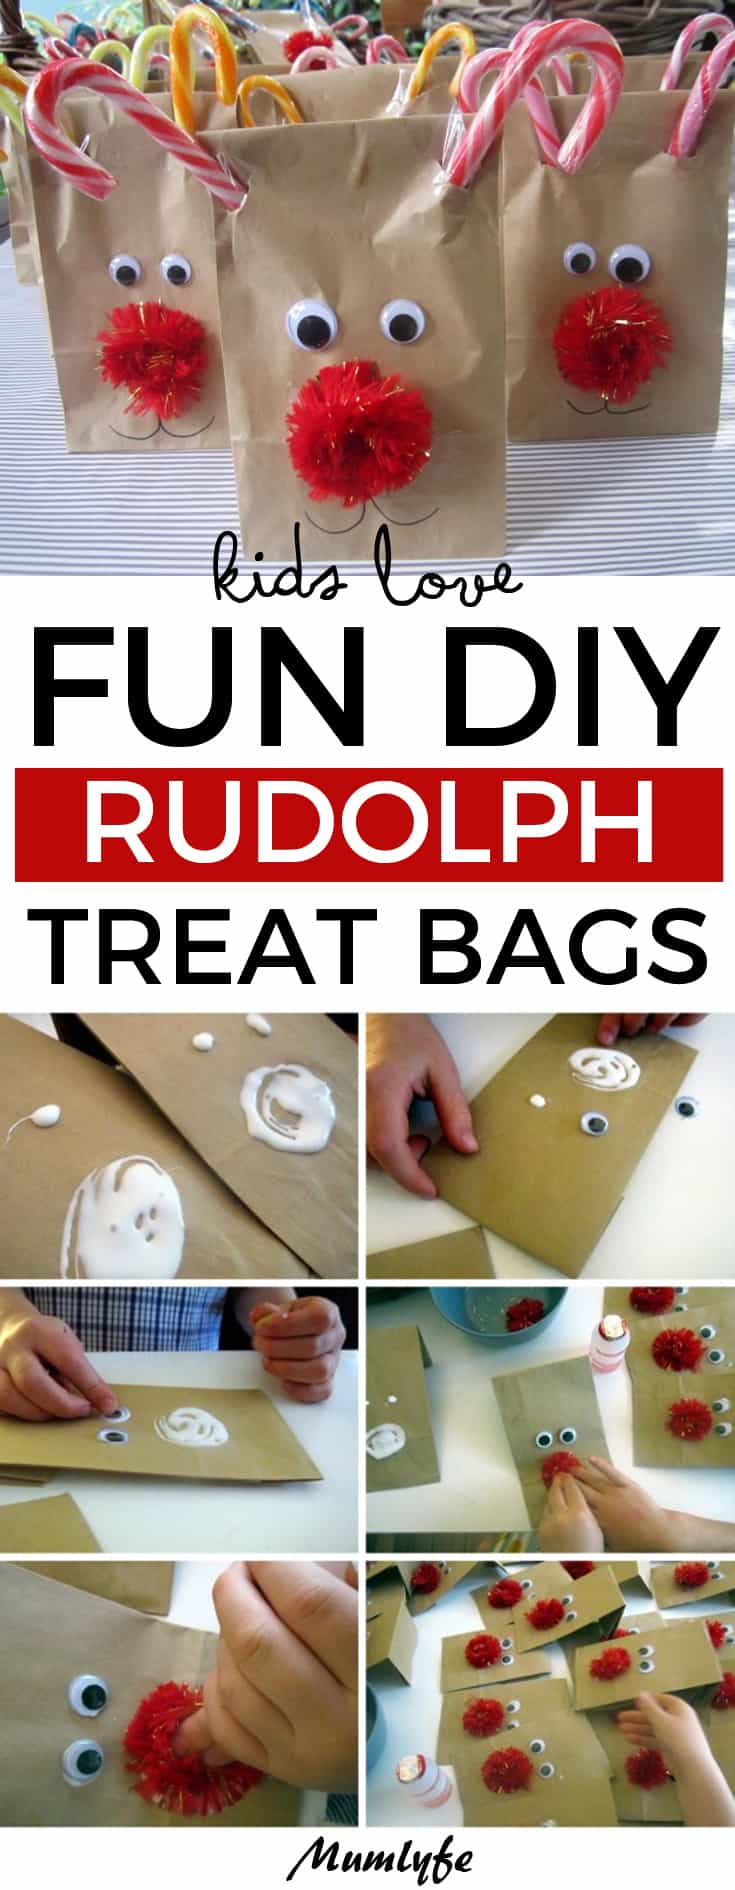 Kids love these fun DIY Rudolph treat bags. #Rudolf #Christmas #Christmascrafts #DIYChristmas #kids